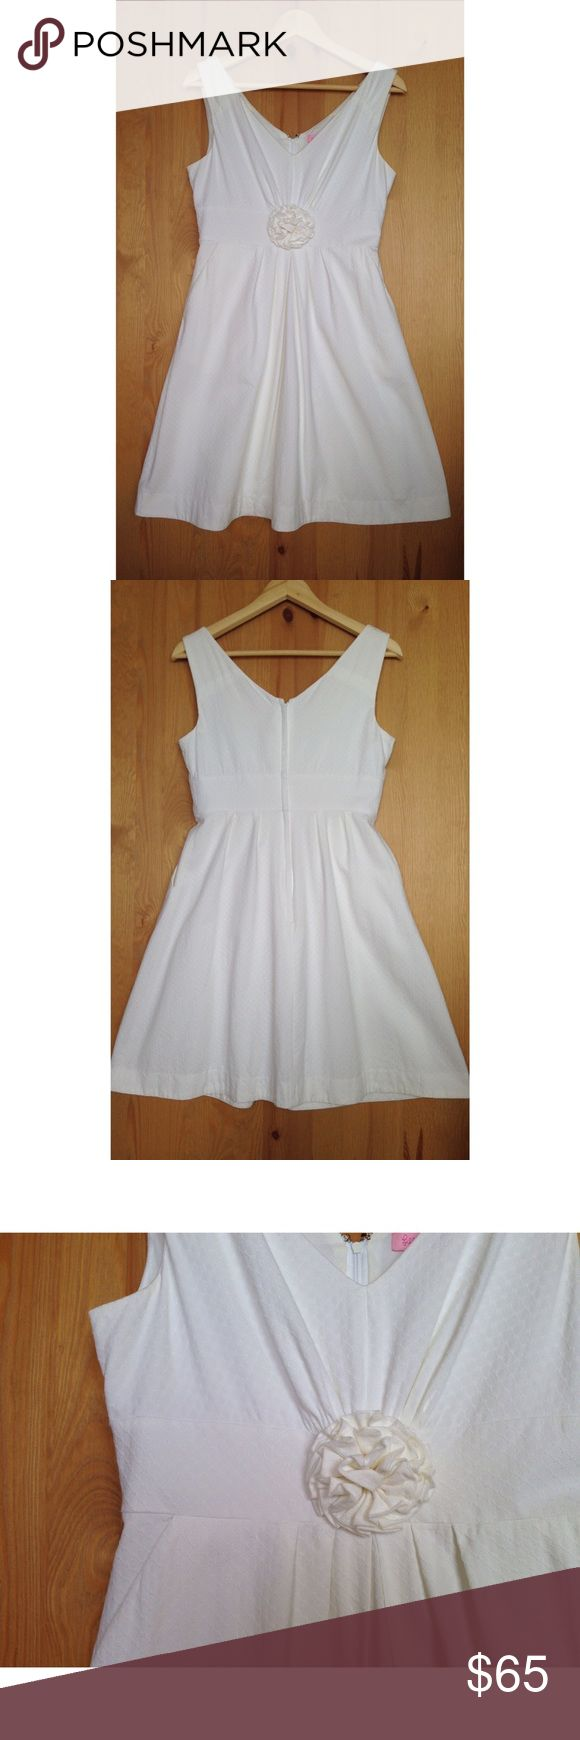 Lilly Pulitzer white dress Lilly Pulitzer white dress with flower detail. Size 6. Has pockets. Back zip. Shell & lining: 100% cotton. EUC, worn exactly twice Lilly Pulitzer Dresses